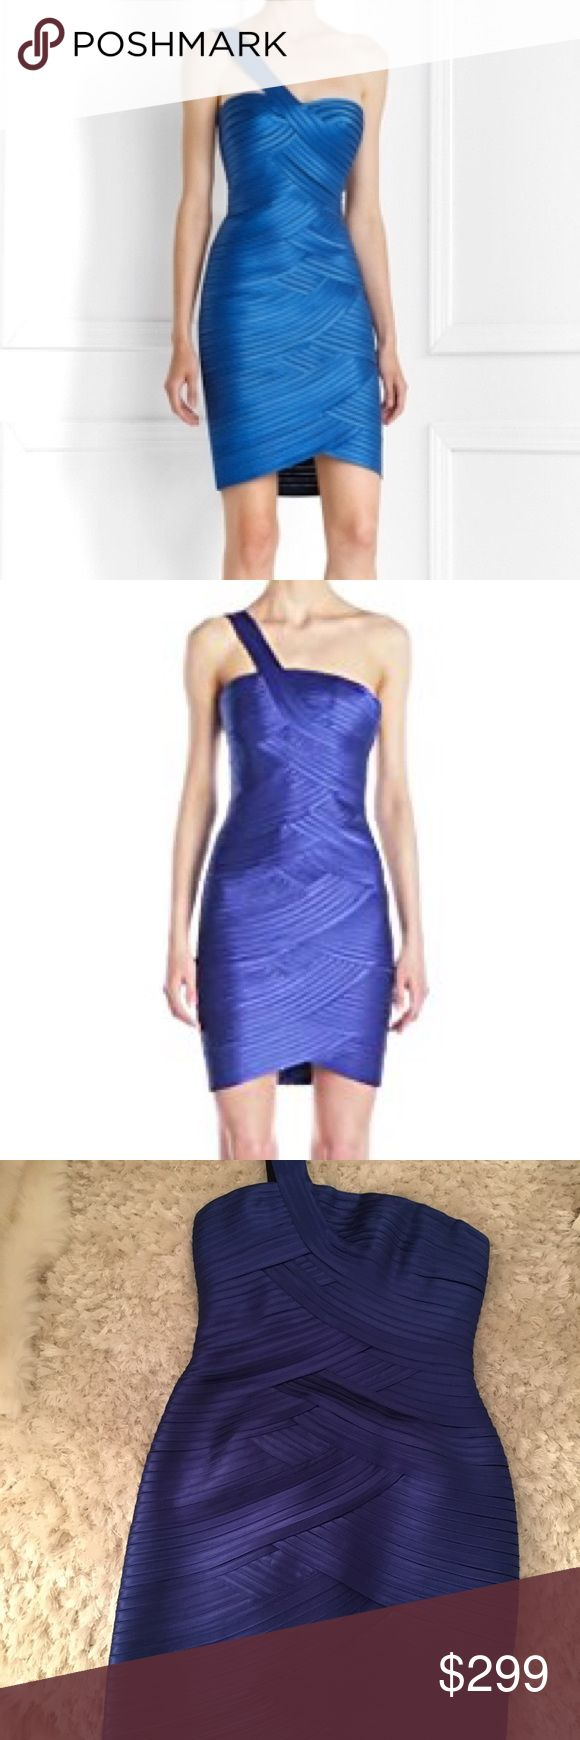 BCBG MAXAZRIA ONE SHOULDER DRESS BLUE COCKTAIL Bandage style one shoulder short cocktail dress sapphire blue night out formal dress brand new with tags never worn excellent condition BCBGMaxAzria Dresses One Shoulder